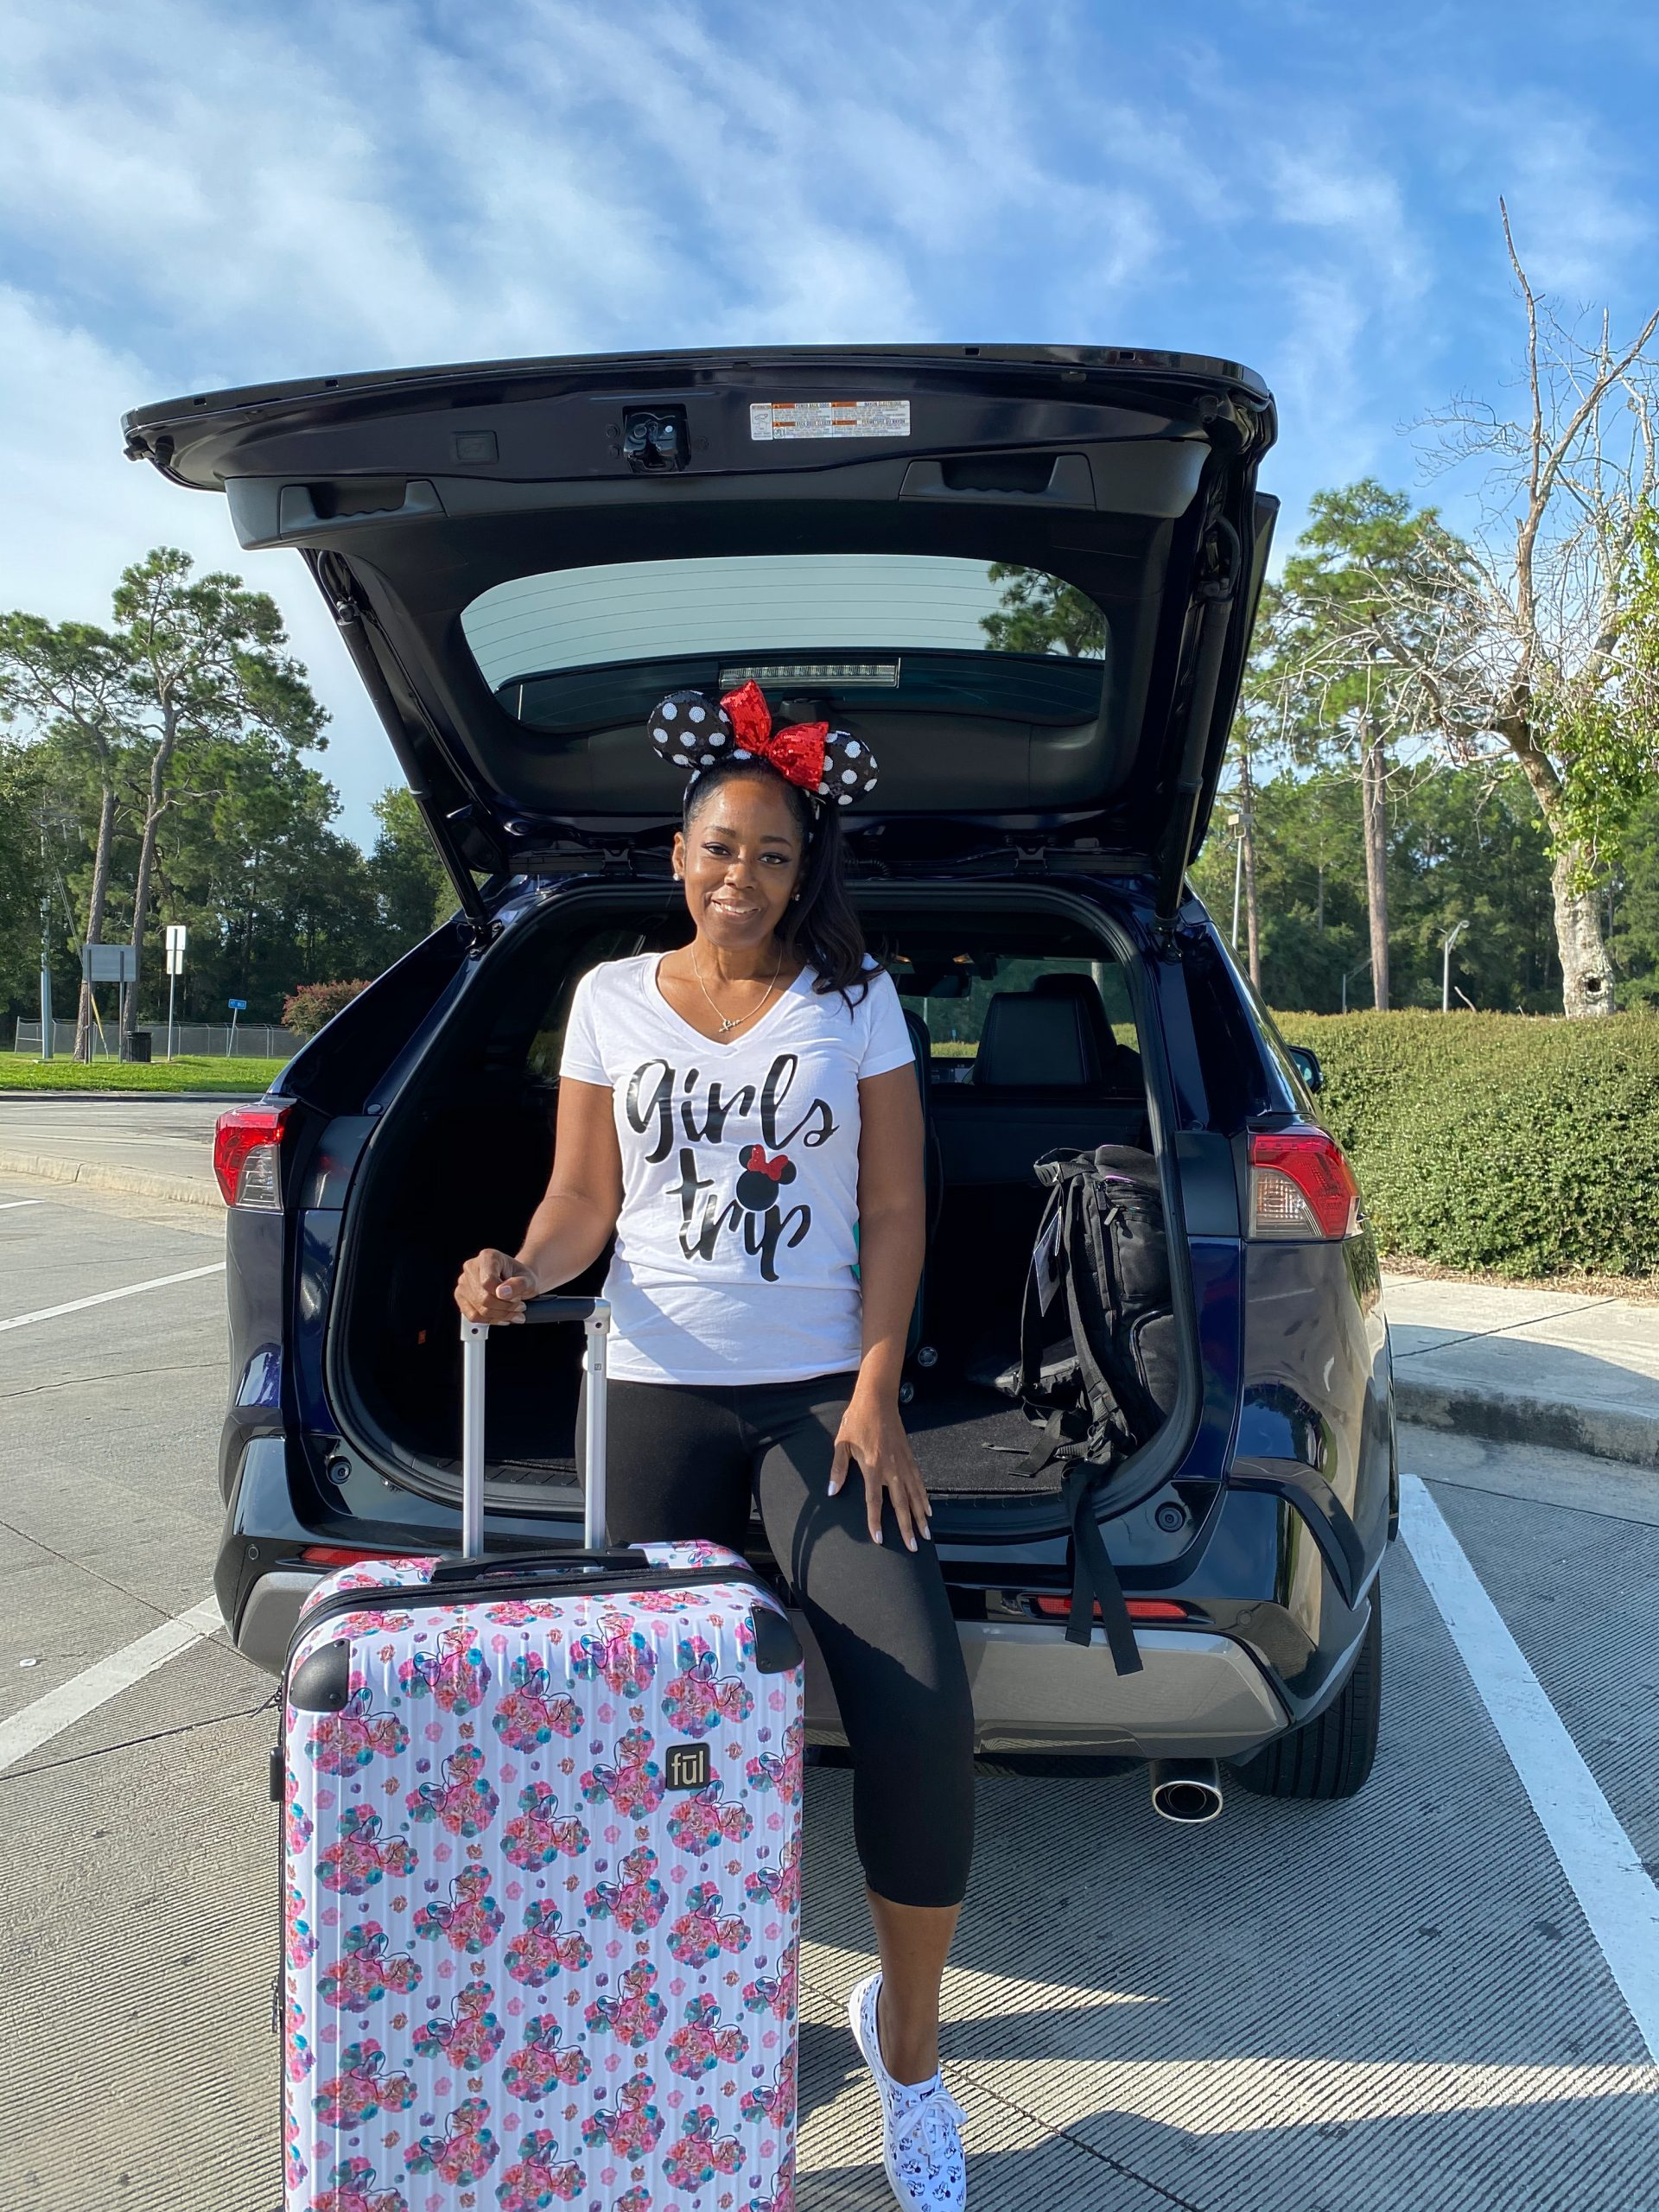 FŪL Disney Minnie Mouse Floral Printed Hardsided Rolling Luggage